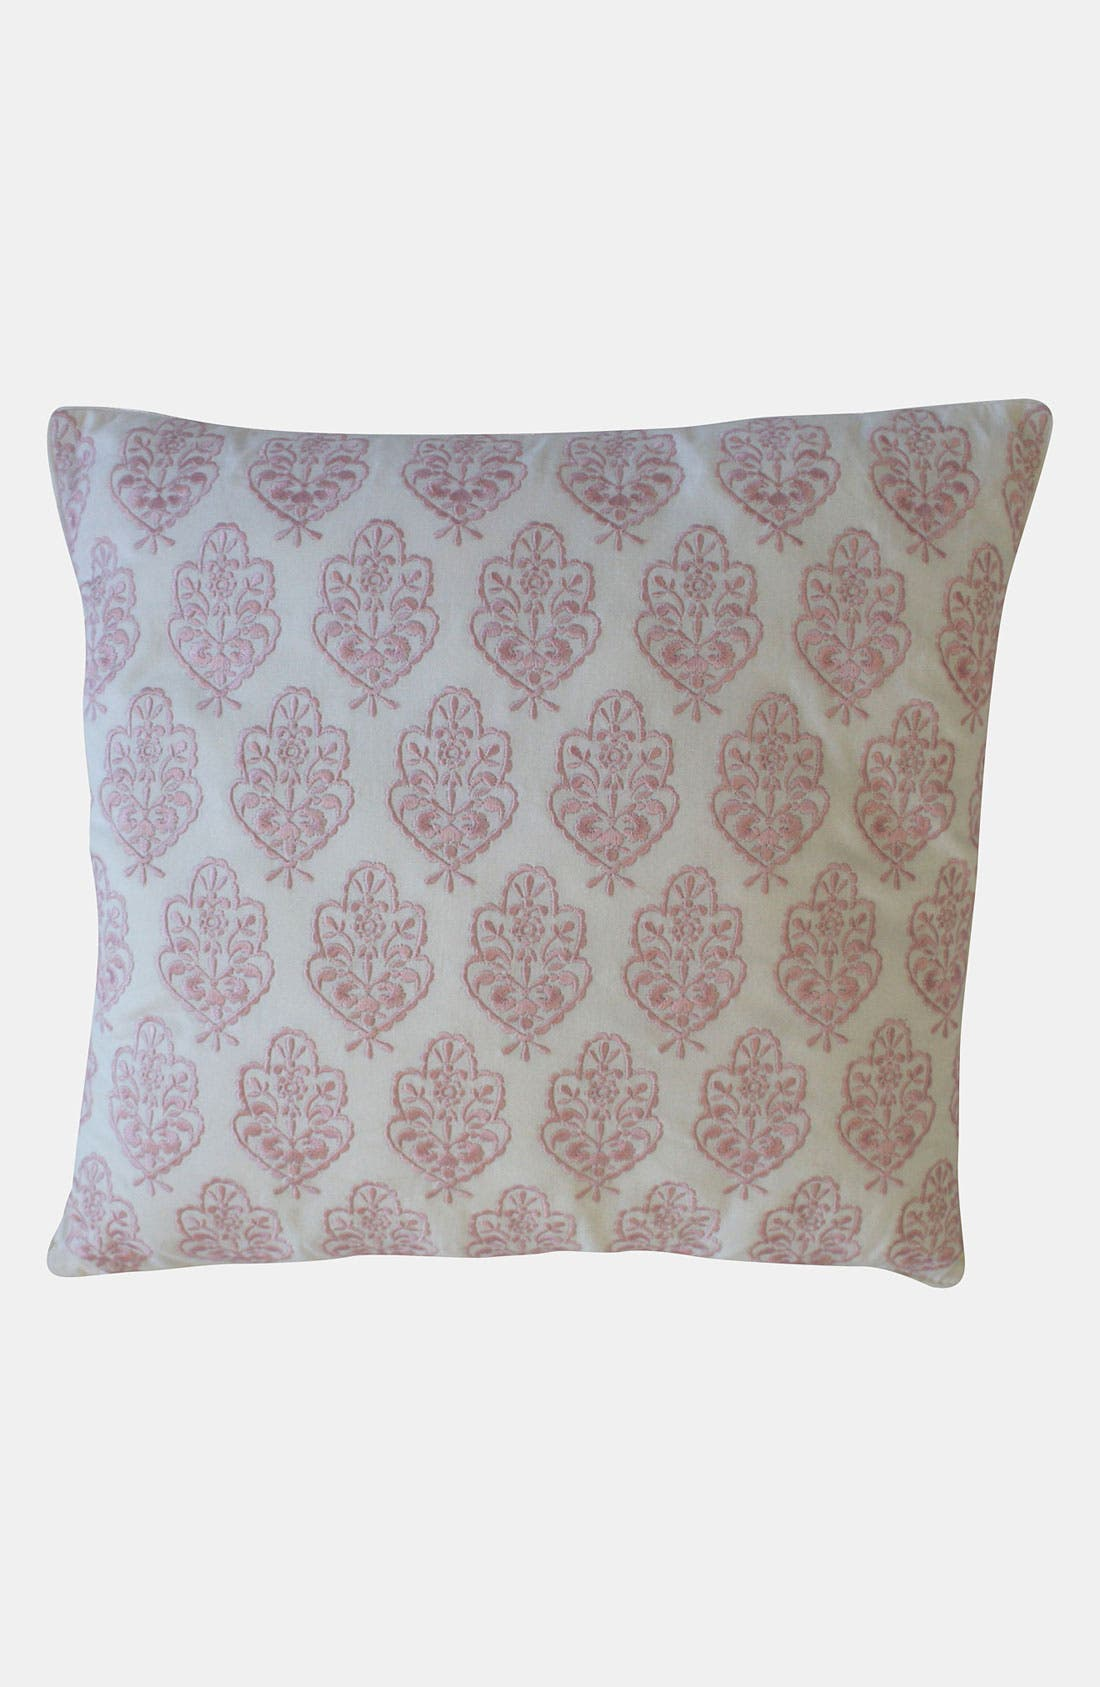 Alternate Image 1 Selected - Dena Home 'Annabelle' Embroidered Pillow